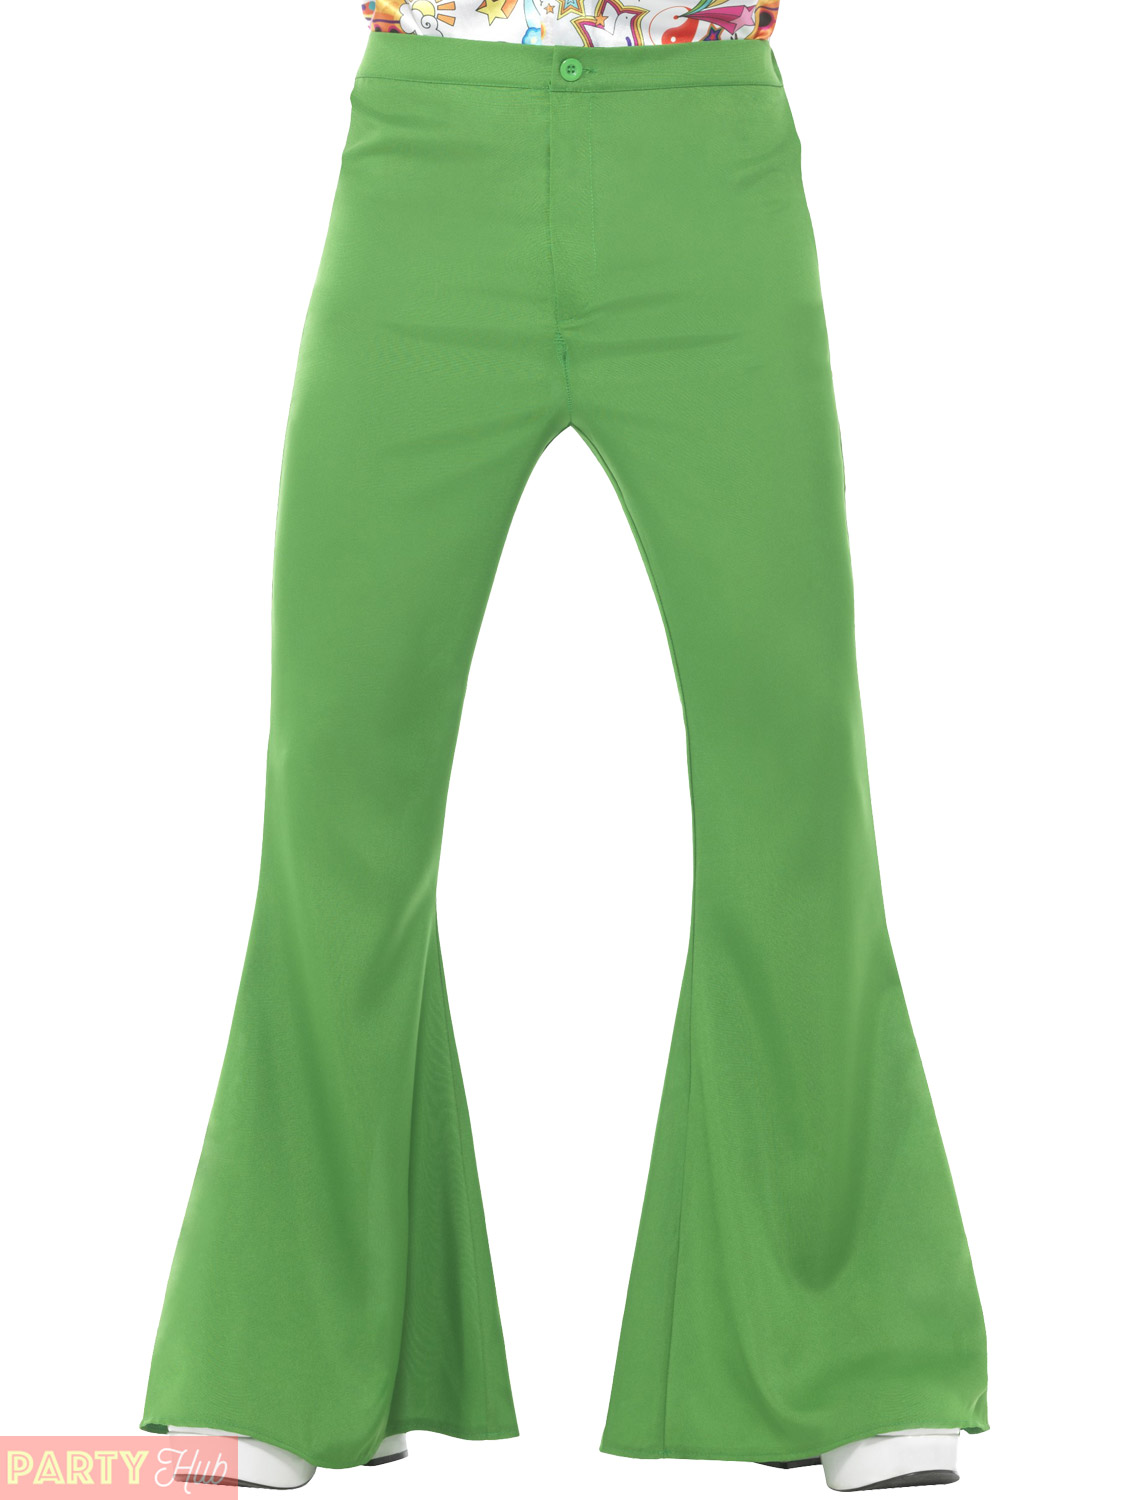 Blue Flared Trousers Mens 60s 70s Fancy Dress Hippy Flares Disco Adults Costume